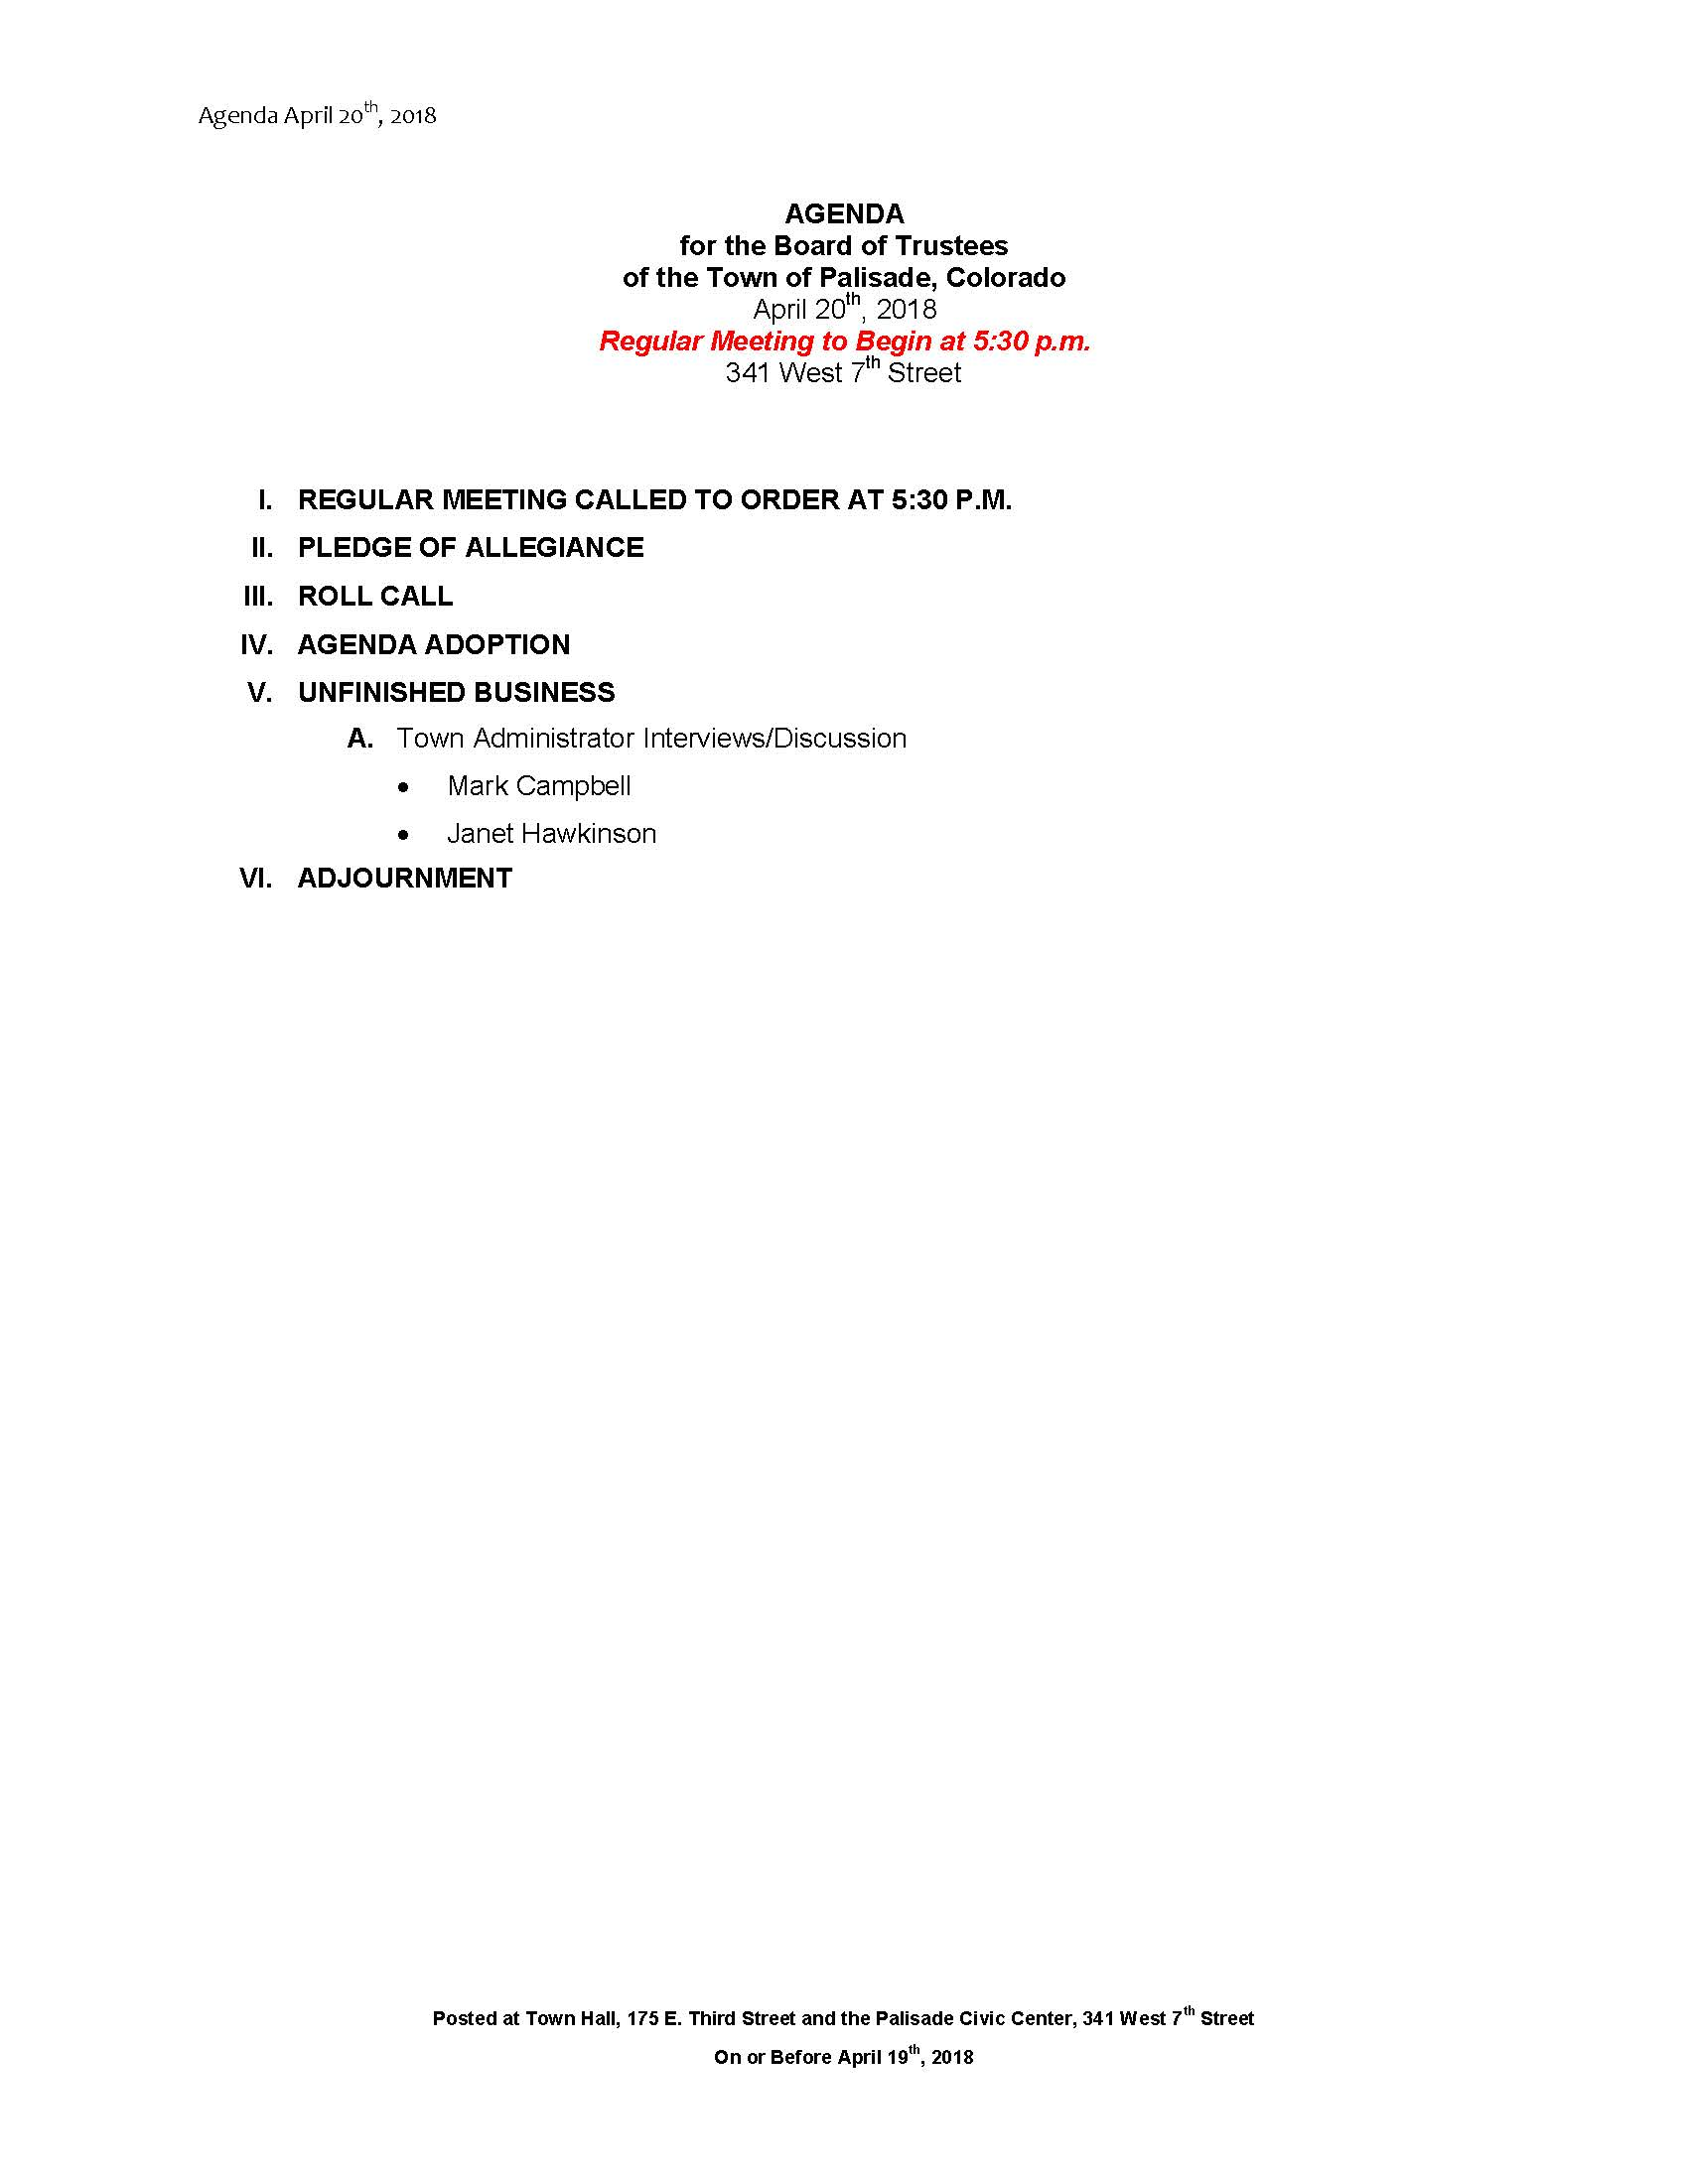 April 20th 2018 SPECIAL MEETING Agenda